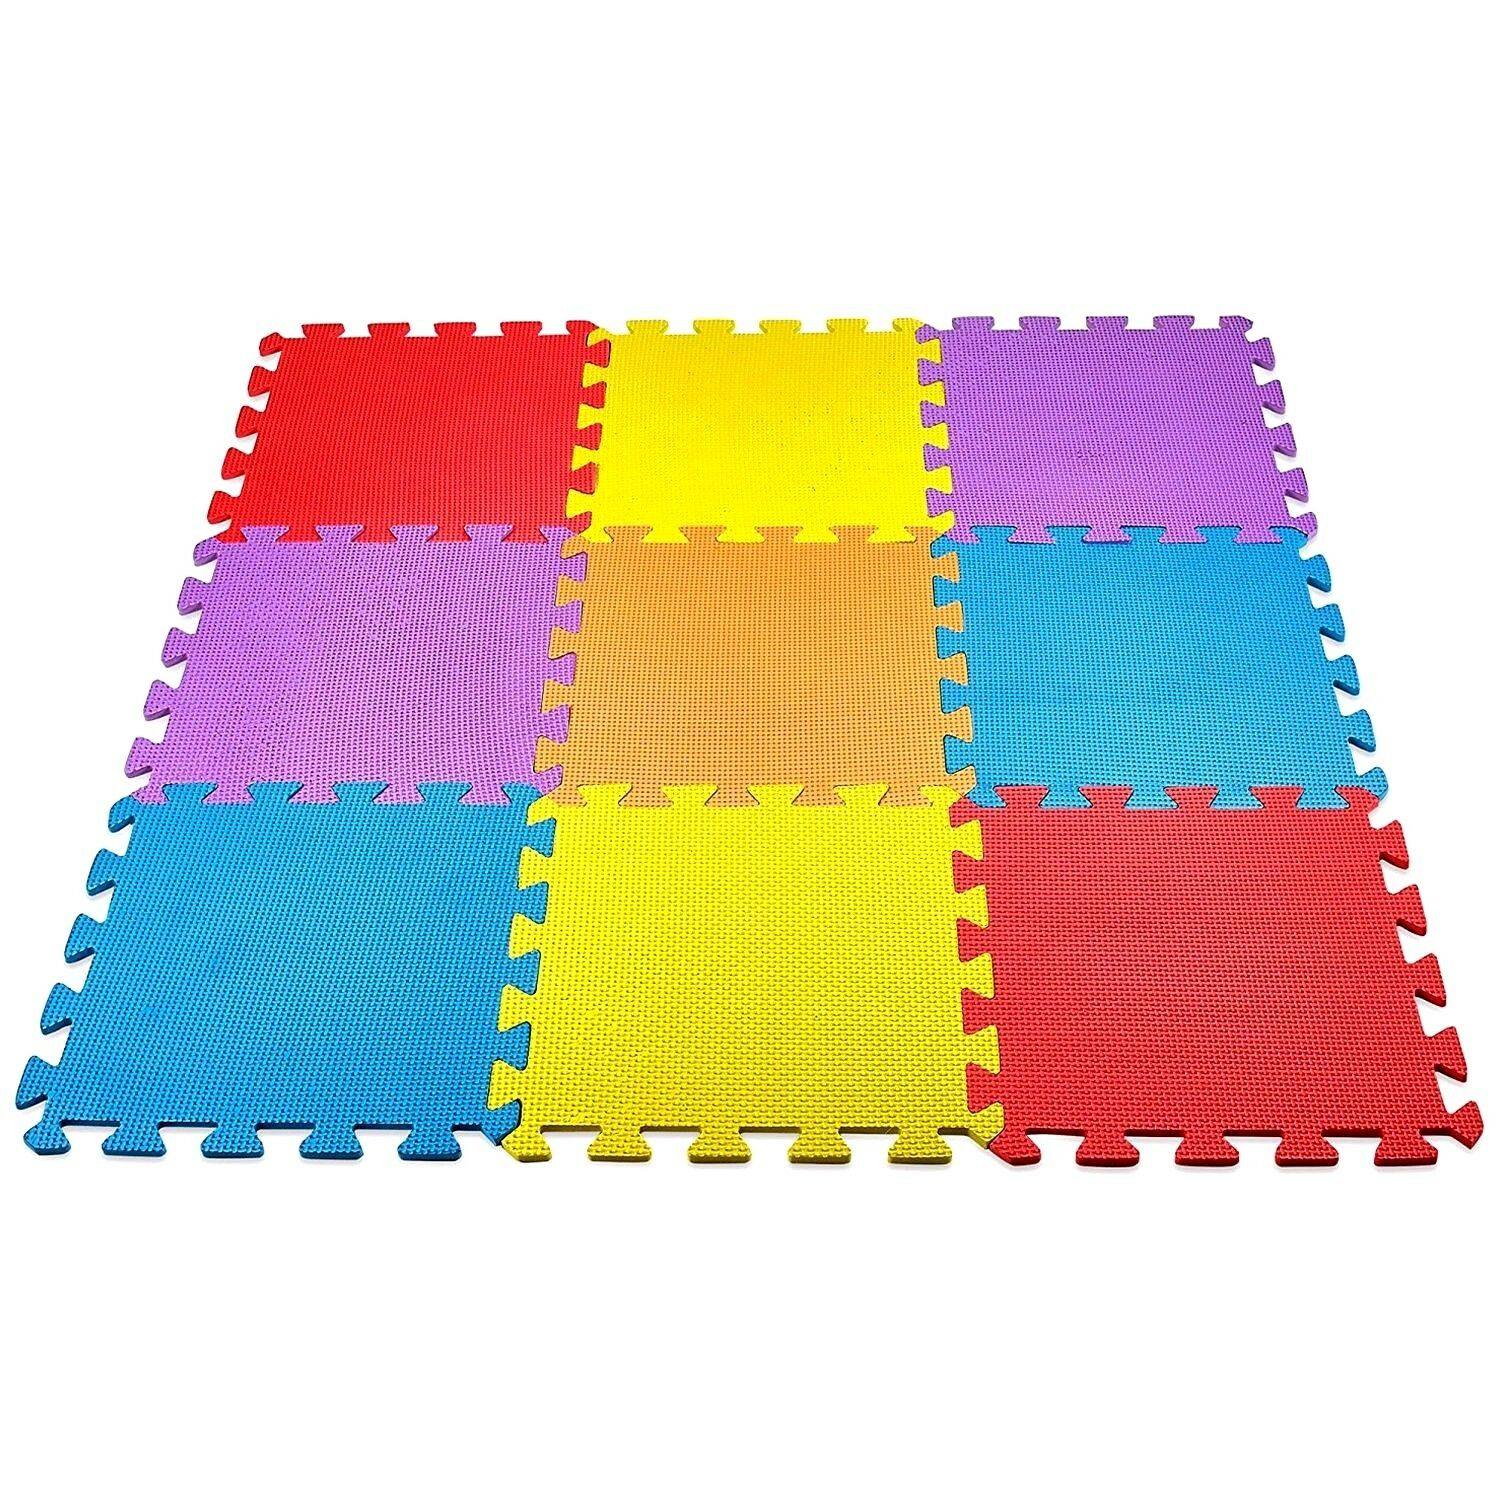 Baby play mat foam floor puzzle 9 tiles toddler activity gym kids picture 1 of 12 doublecrazyfo Gallery